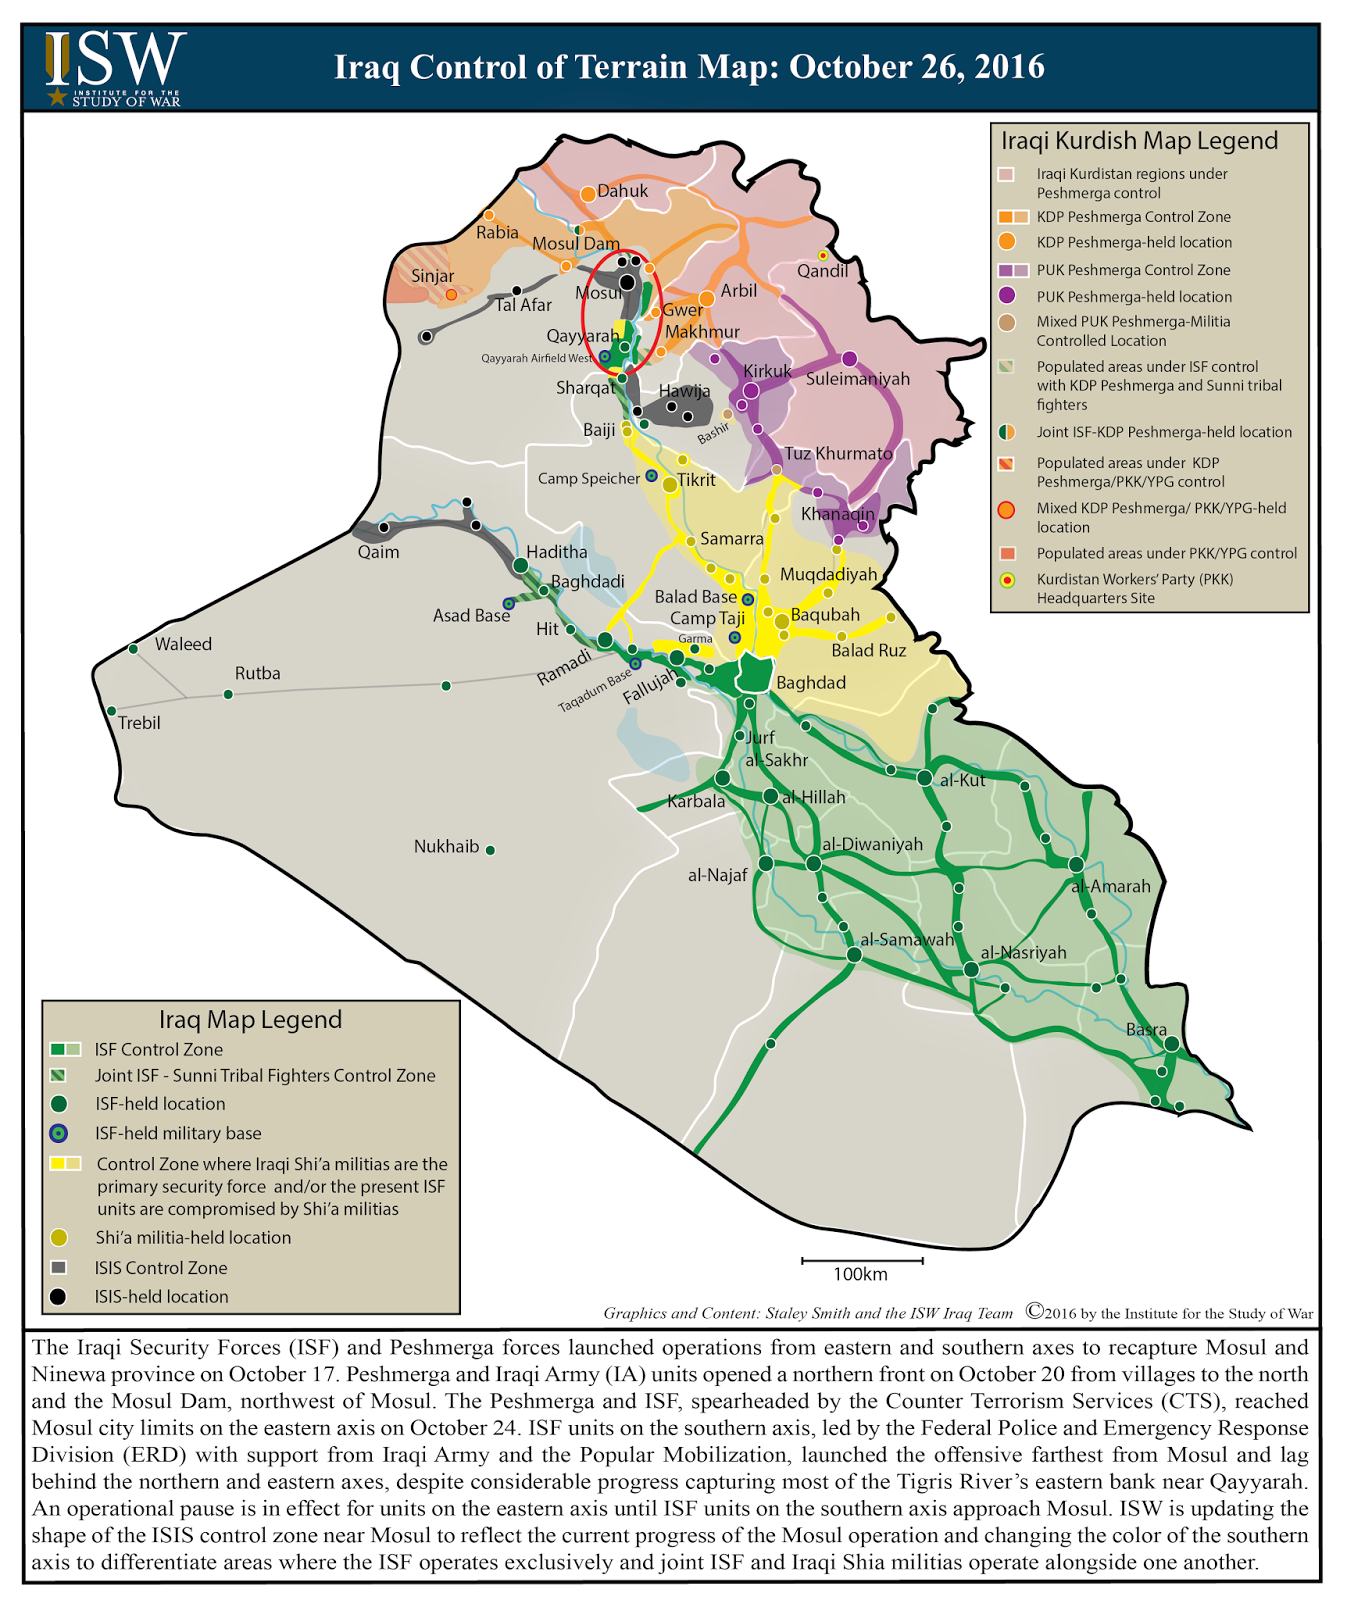 of the southern axis to differentiate areas where the isf operates exclusively and joint isf and iraqi shia militias operate alongside one another